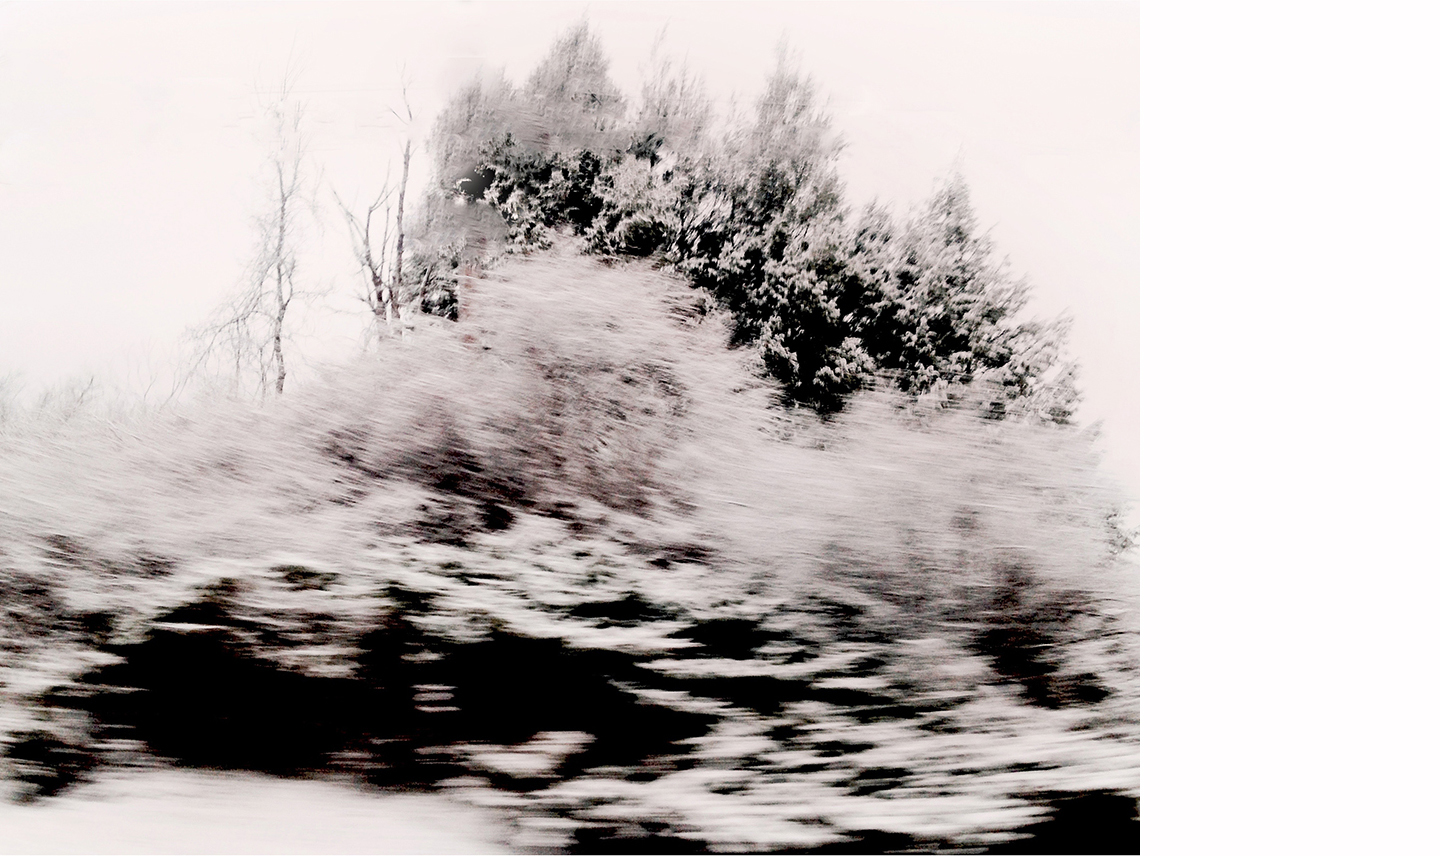 """Winterscape #11   Archival Pigment on Hahnemuhle German Etching Paper Rising Museum Acid Free Mounting Board Acrylite Non -glare UV Filtering Plexi Glass Custom White Oak Frame 29 x 34"""" including a 6"""" white mat border   $950"""